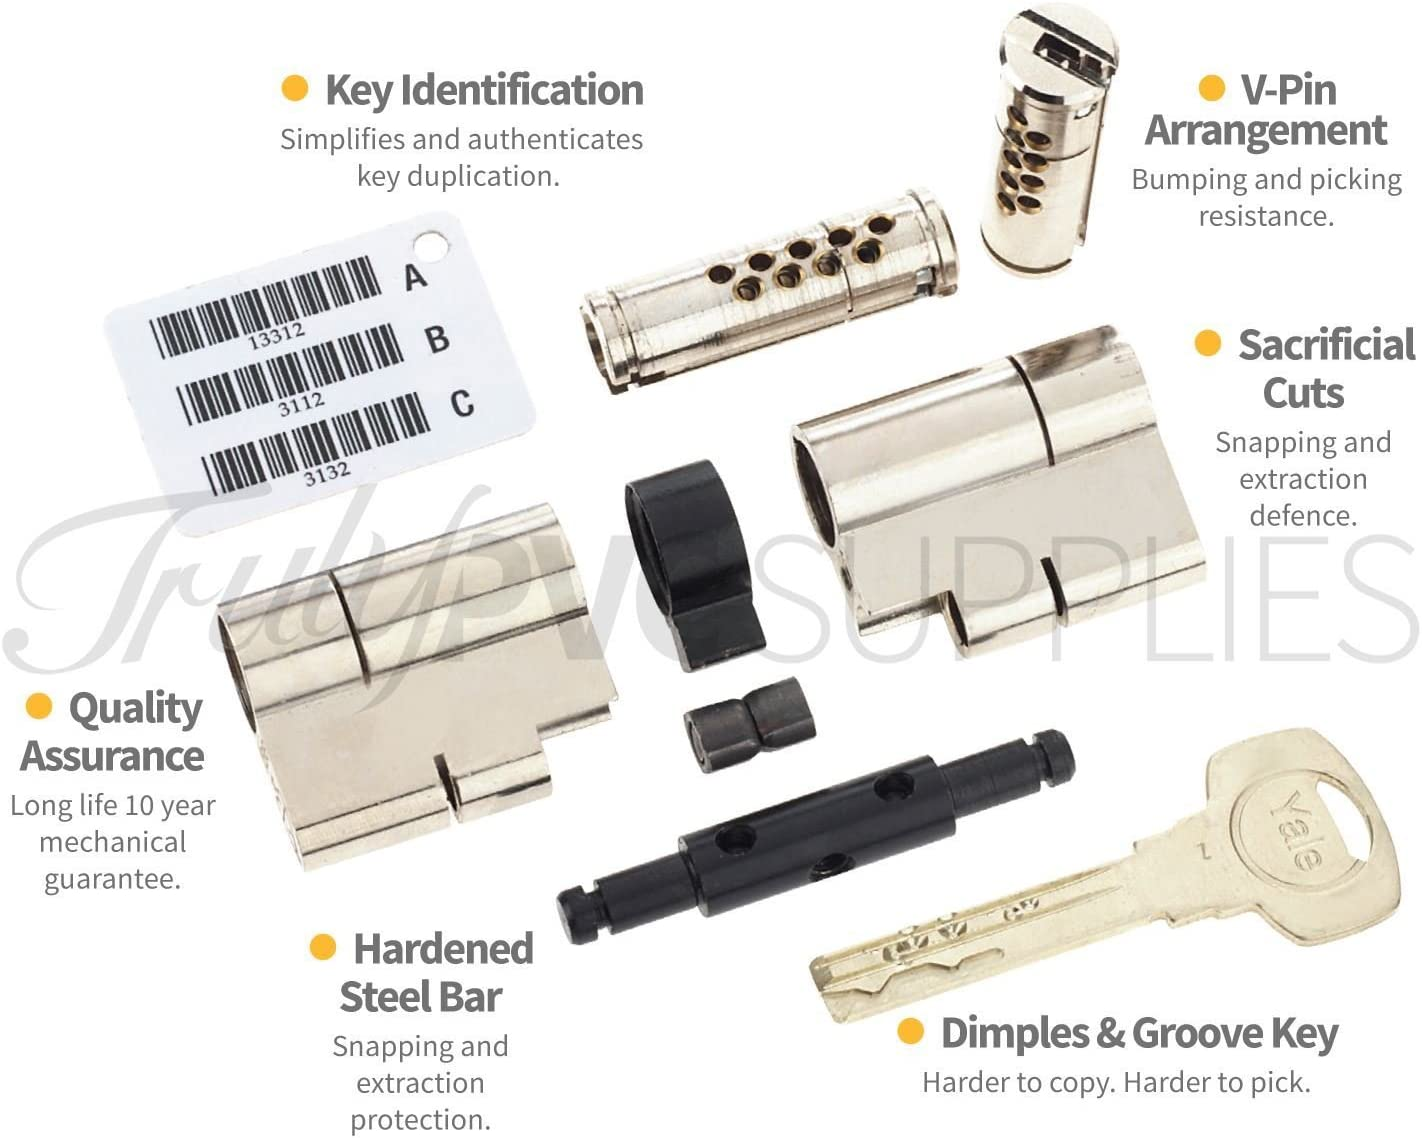 40//45 Brass YALE Superior Euro Cylinder with 3 Keys Anti Snap Pull High Security uPVC Composite Door Barrel Profile Lock Drill Bump Pick